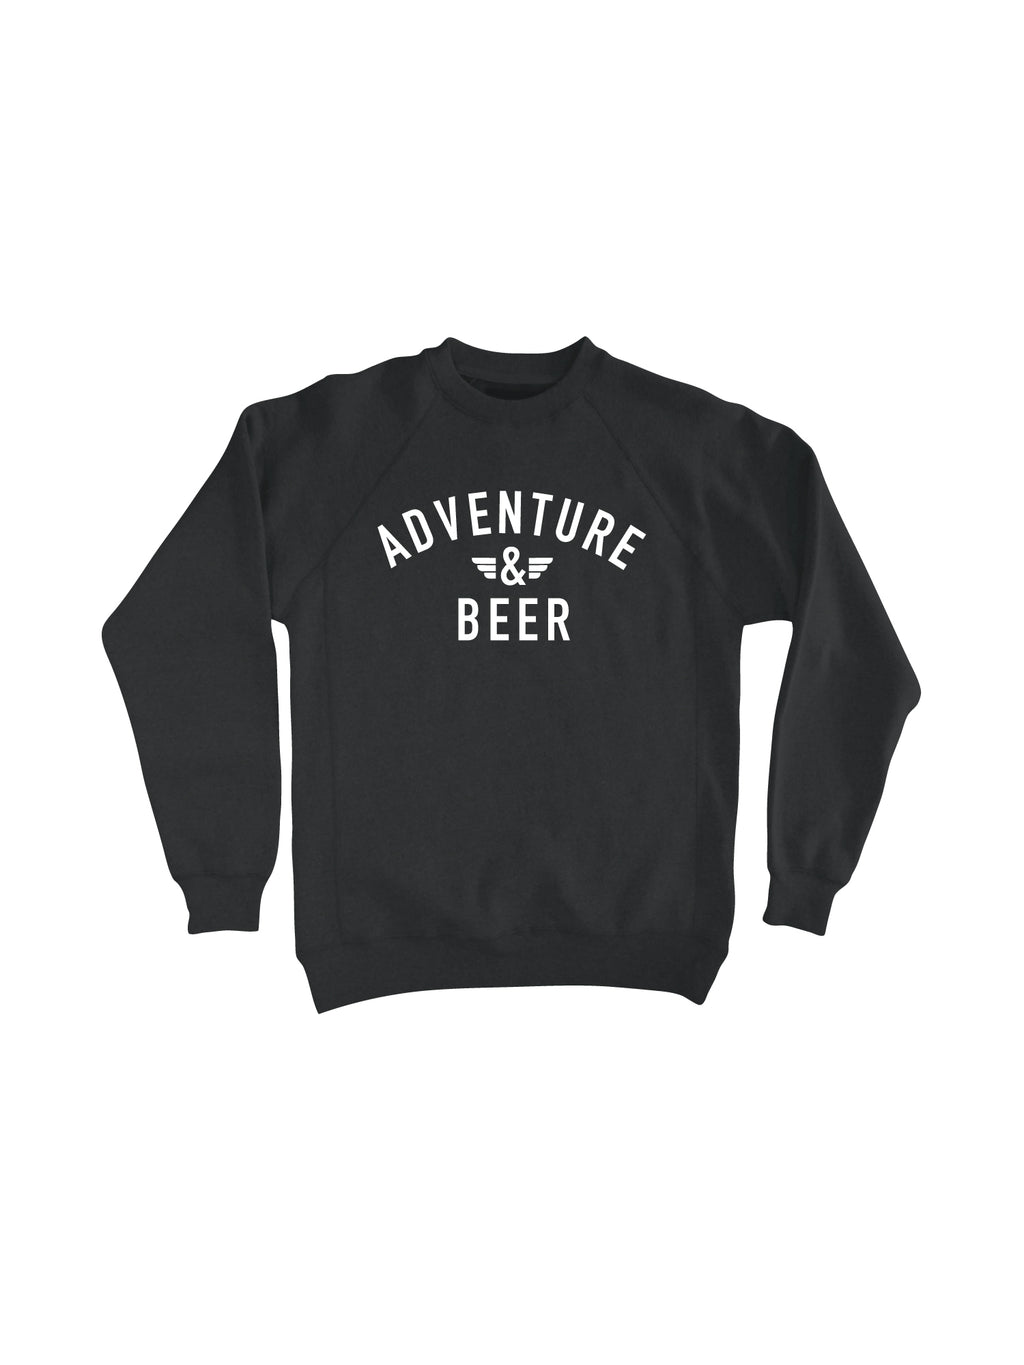 ADVENTURE AND BEER CREW NECK- CHARCOAL - Anderson Bros Design and Supply